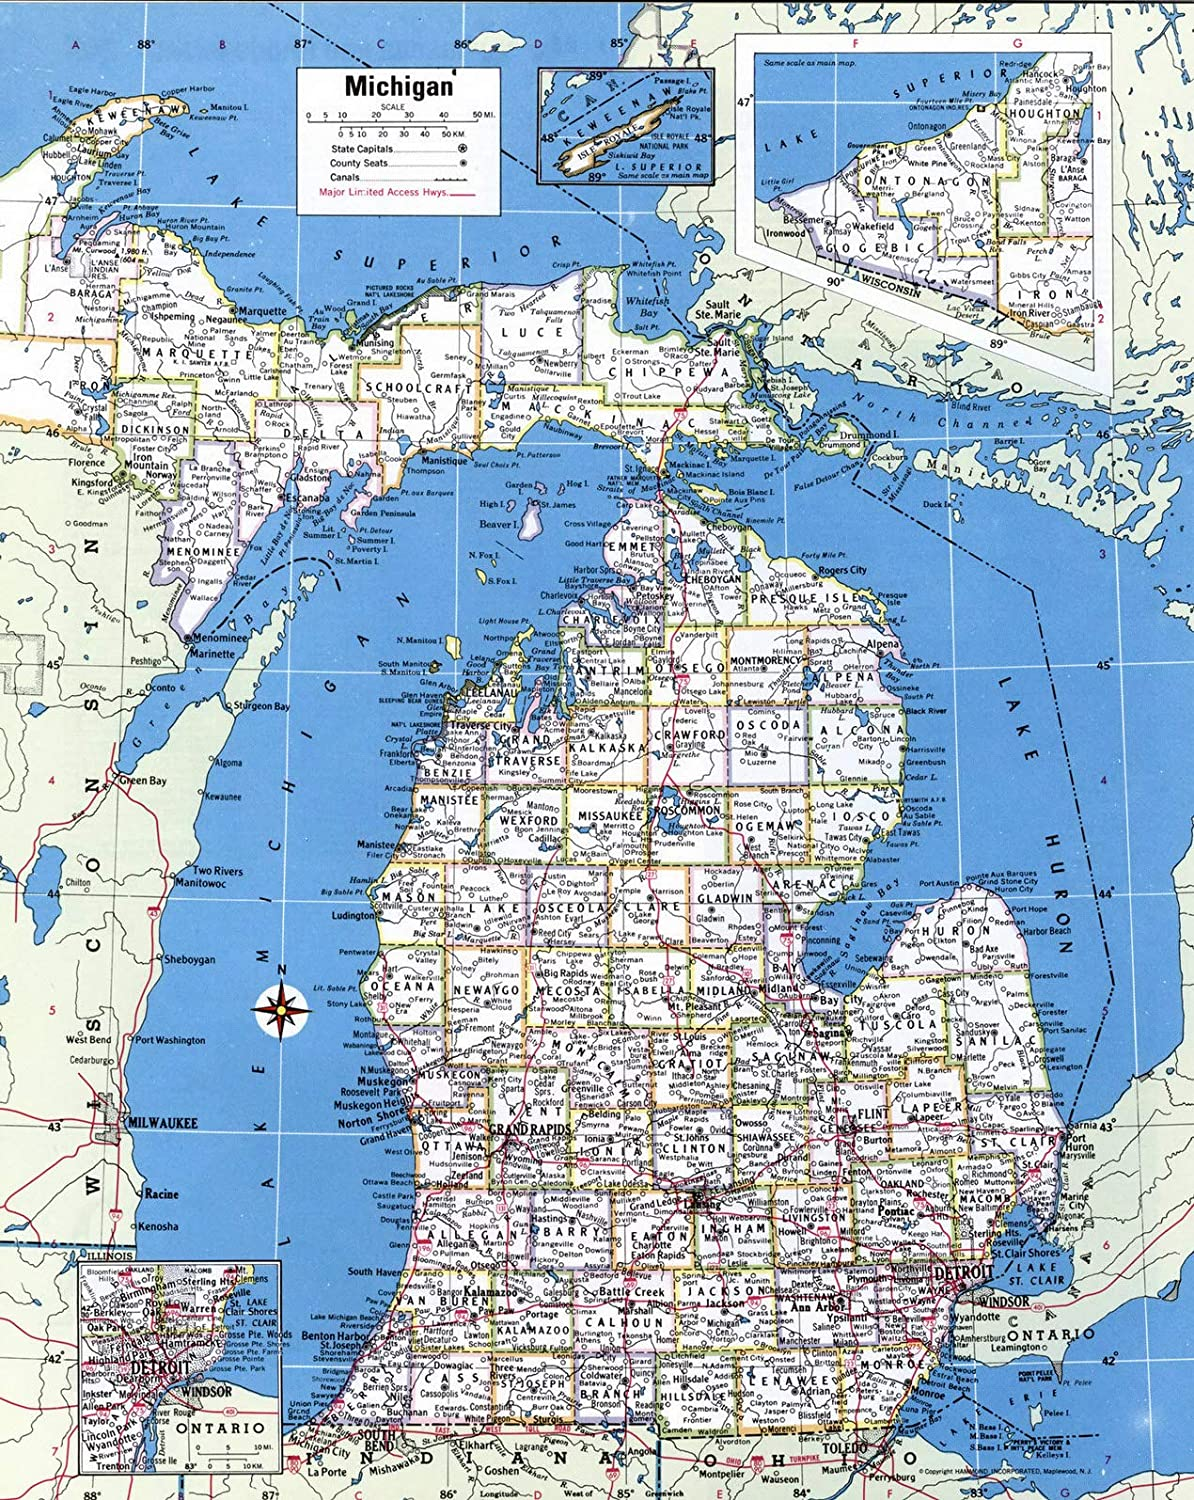 Amazon Com Large Detailed Administrative Map Of Michigan State With Roads And Cities Vivid Imagery Laminated Poster Print 20 Inch By 30 Inch Laminated Poster With Bright Colors Posters Prints